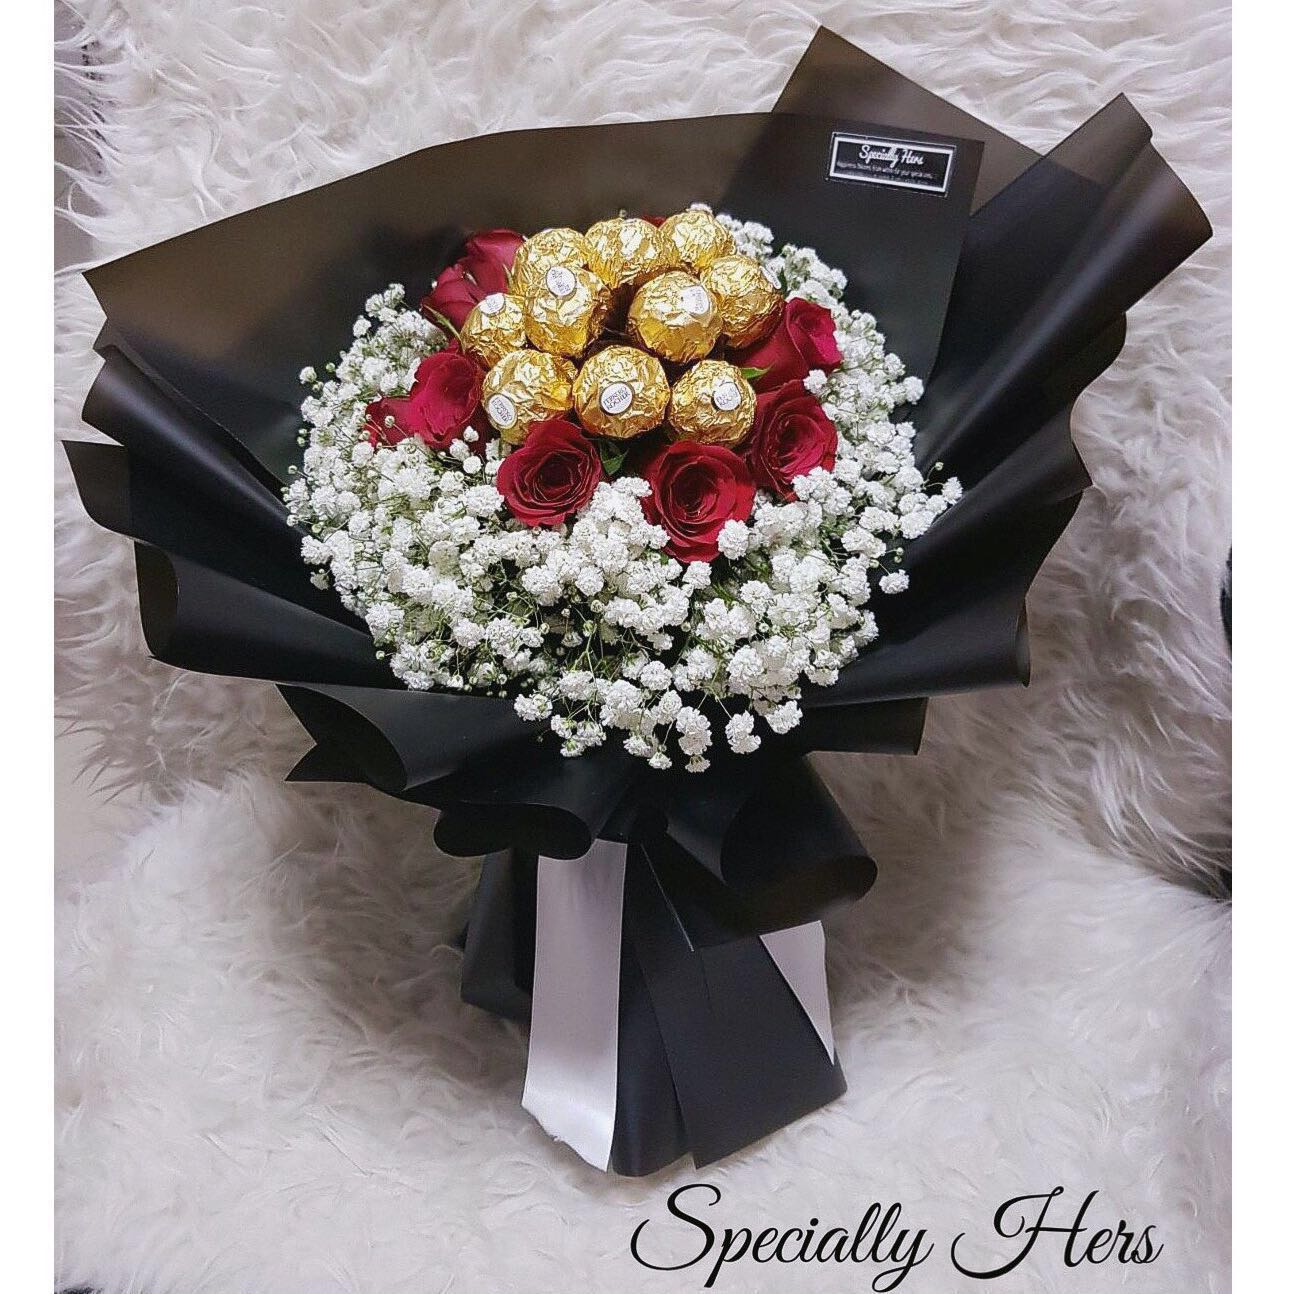 Ferrero Rocher Bouquet, Design & Craft, Handmade Craft on Carousell